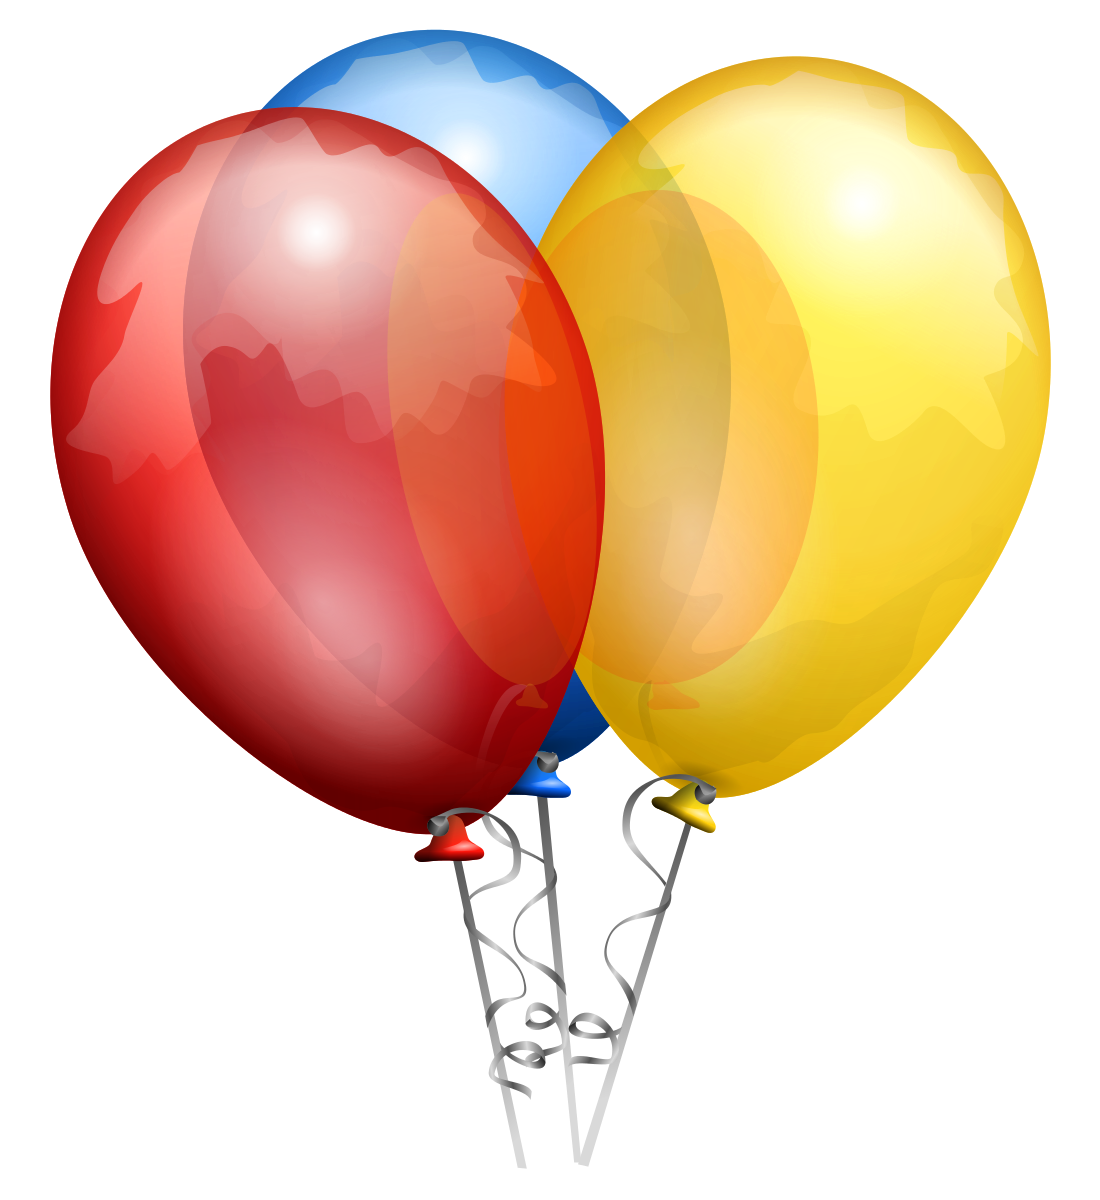 file balloons photo free png image #38980